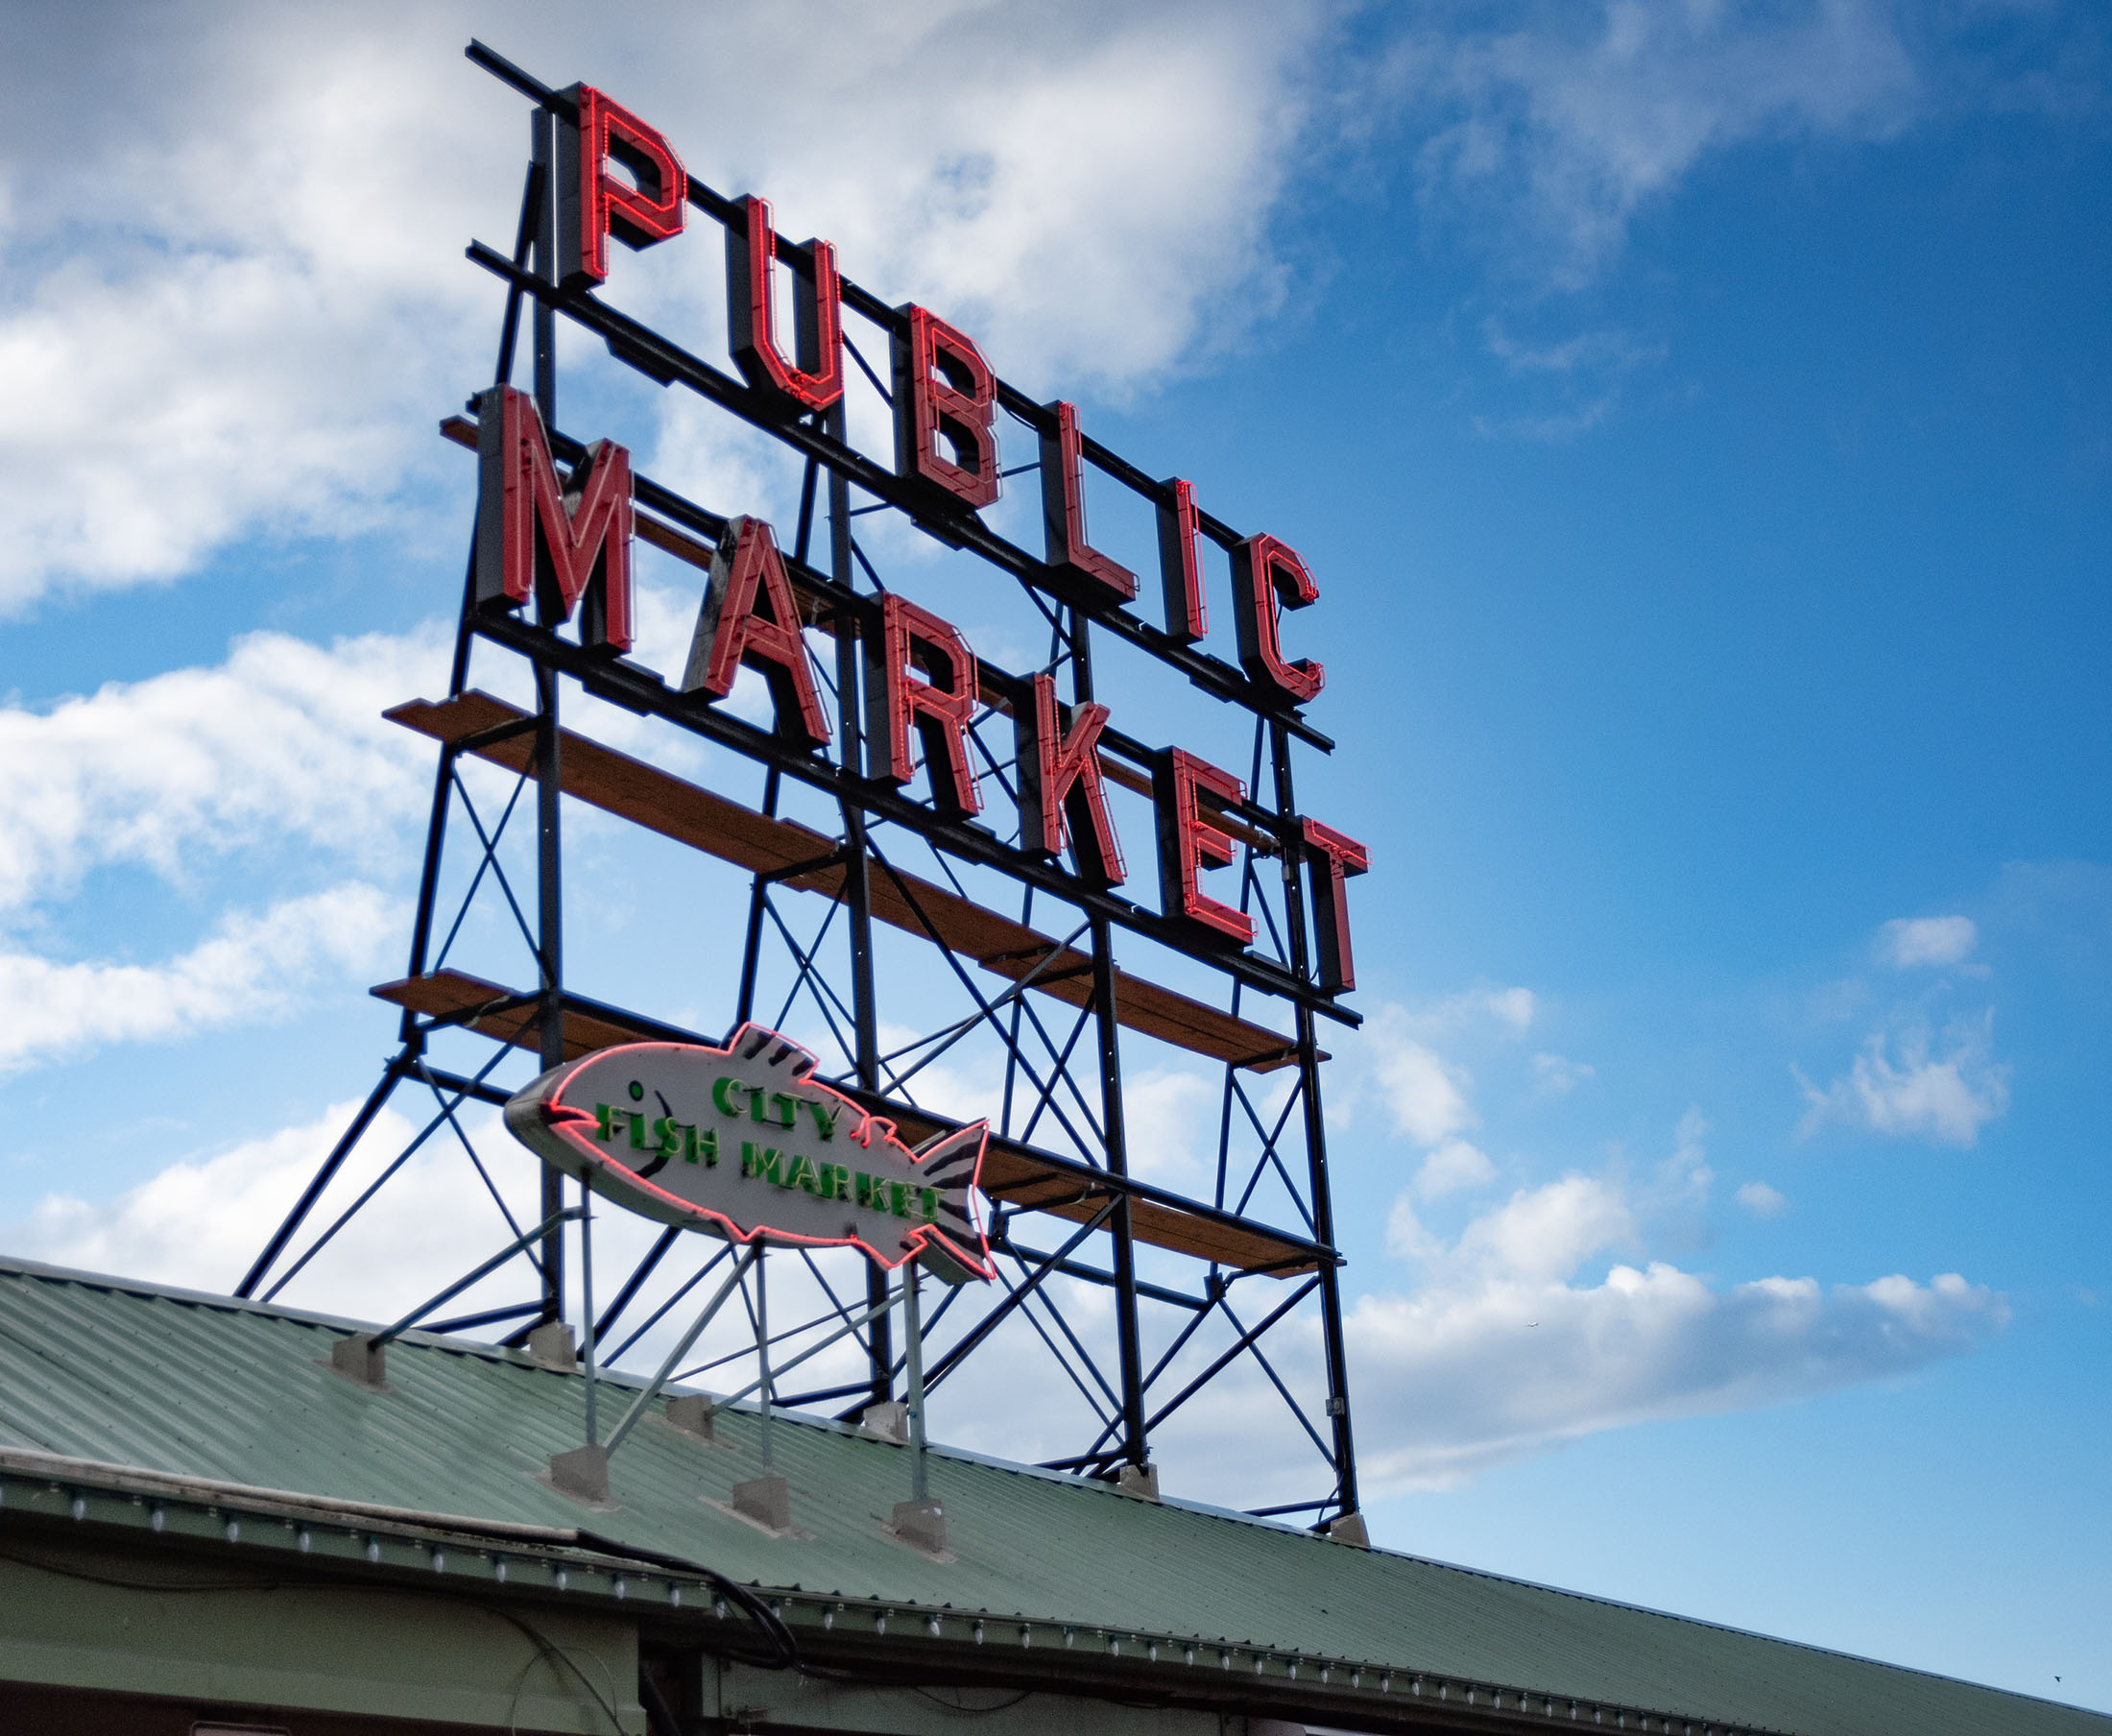 PIKE PLACE MARKET, The iconic, historic Pike Place Market offers a colorful array of farm-fresh foods, crafts, curiosities and more, in the heart of downtown overlooking Elliott Bay.